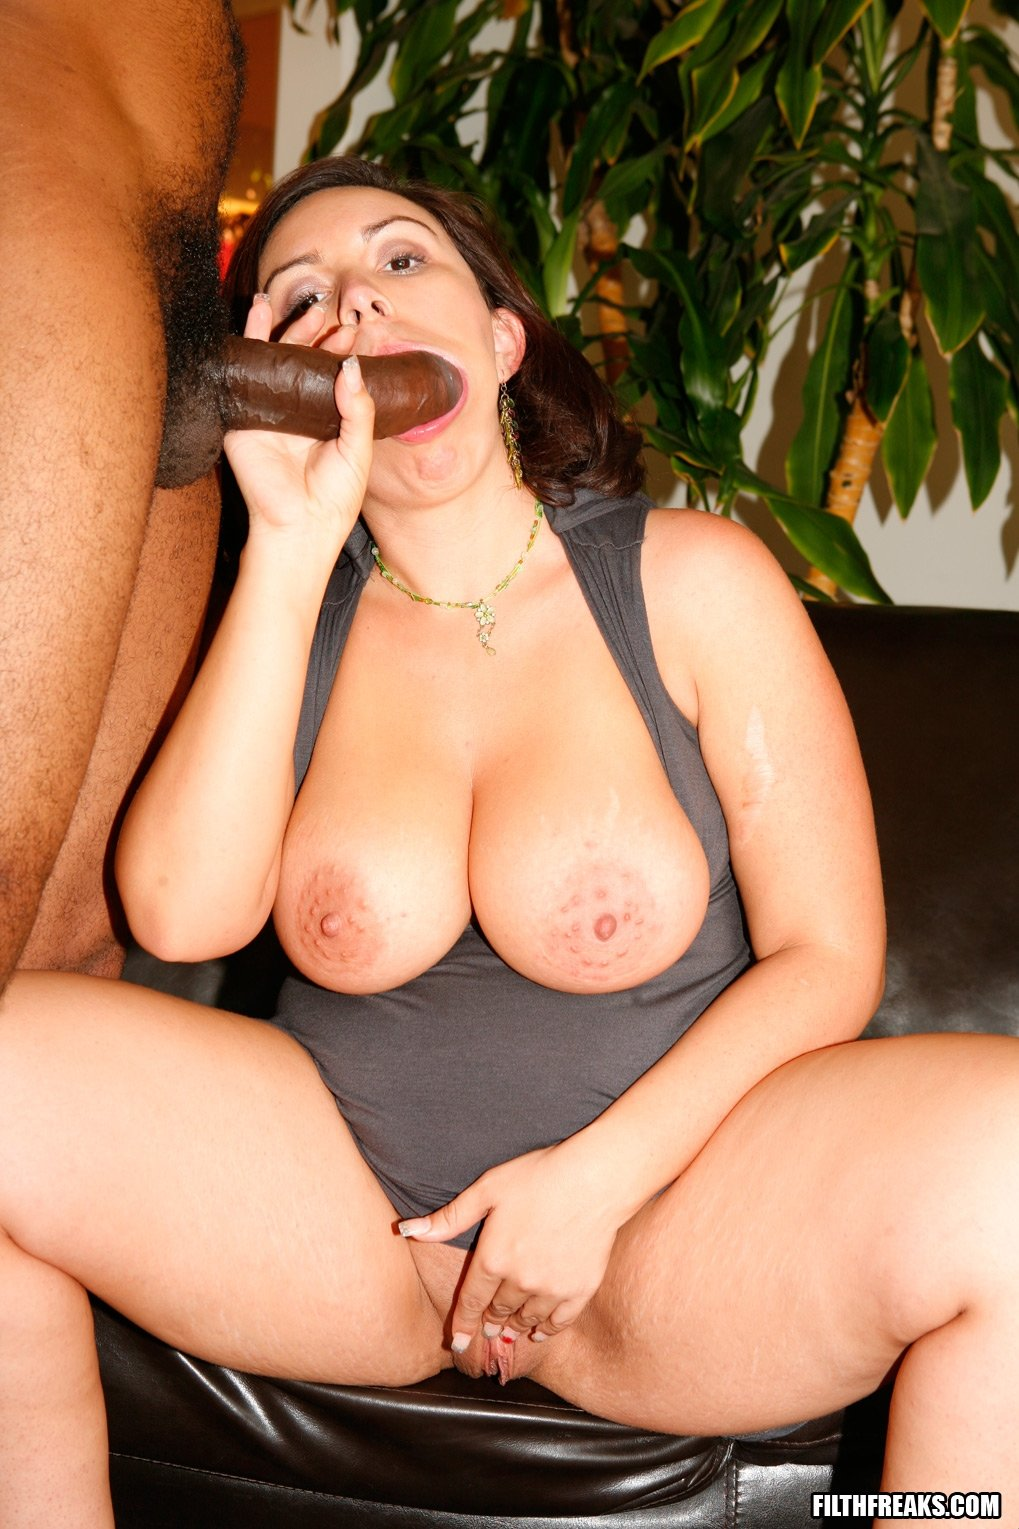 Sexwife in home